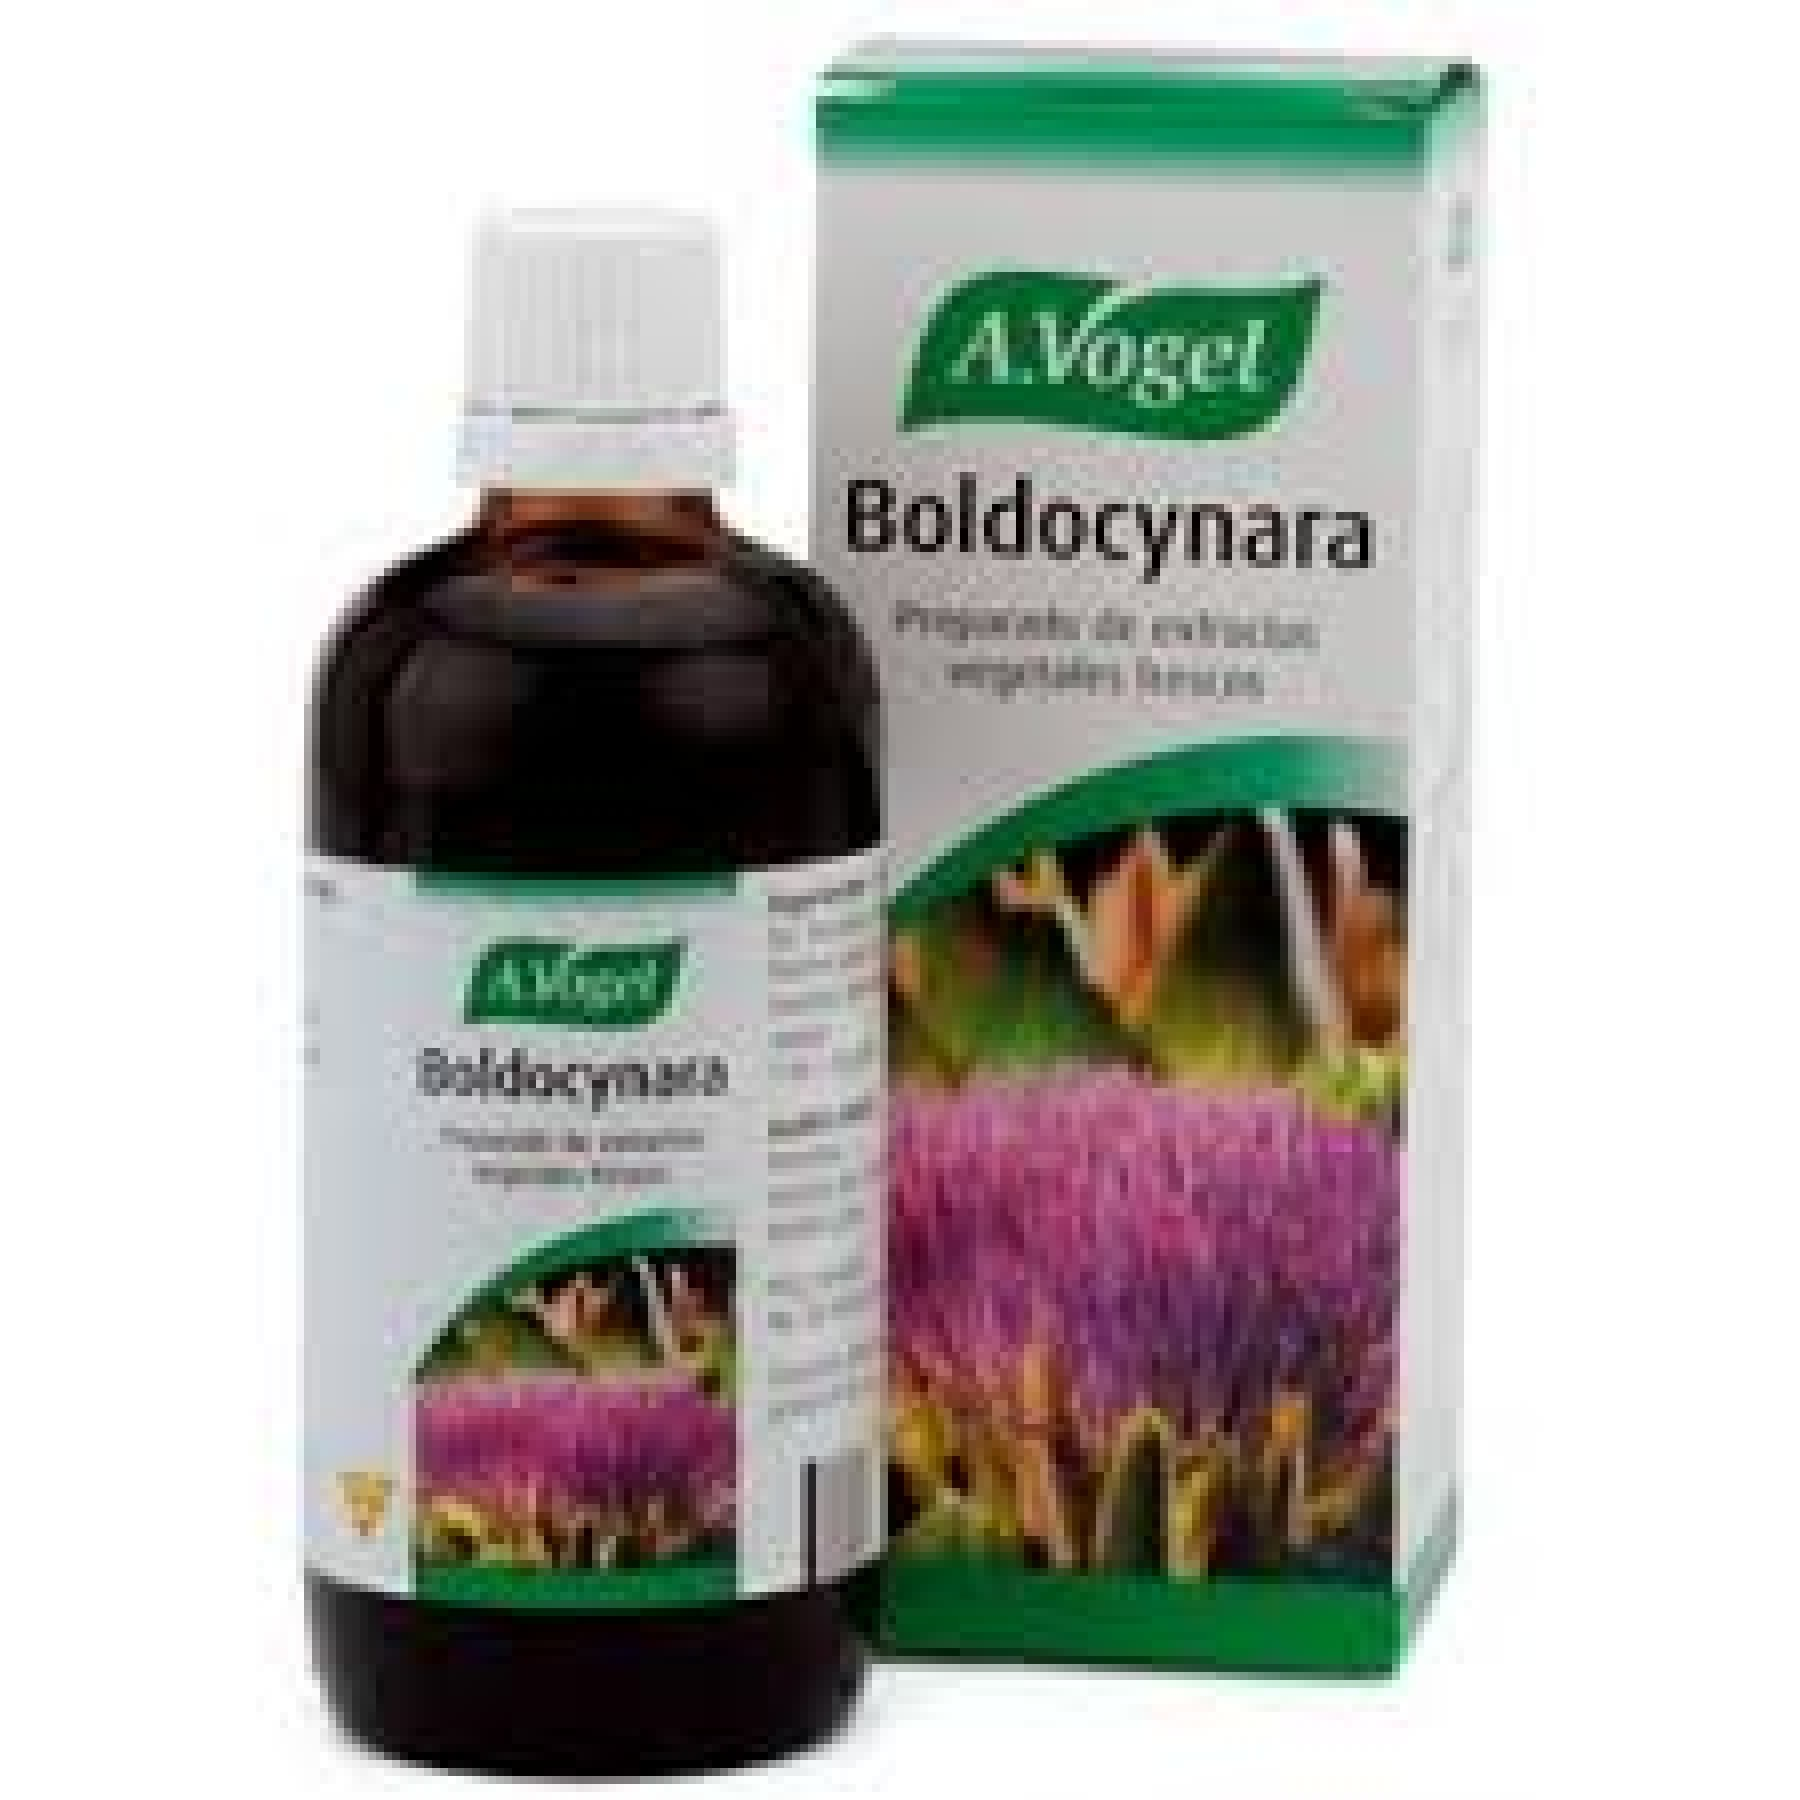 BOLDOCYNARA 100ML (A.VOGEL)